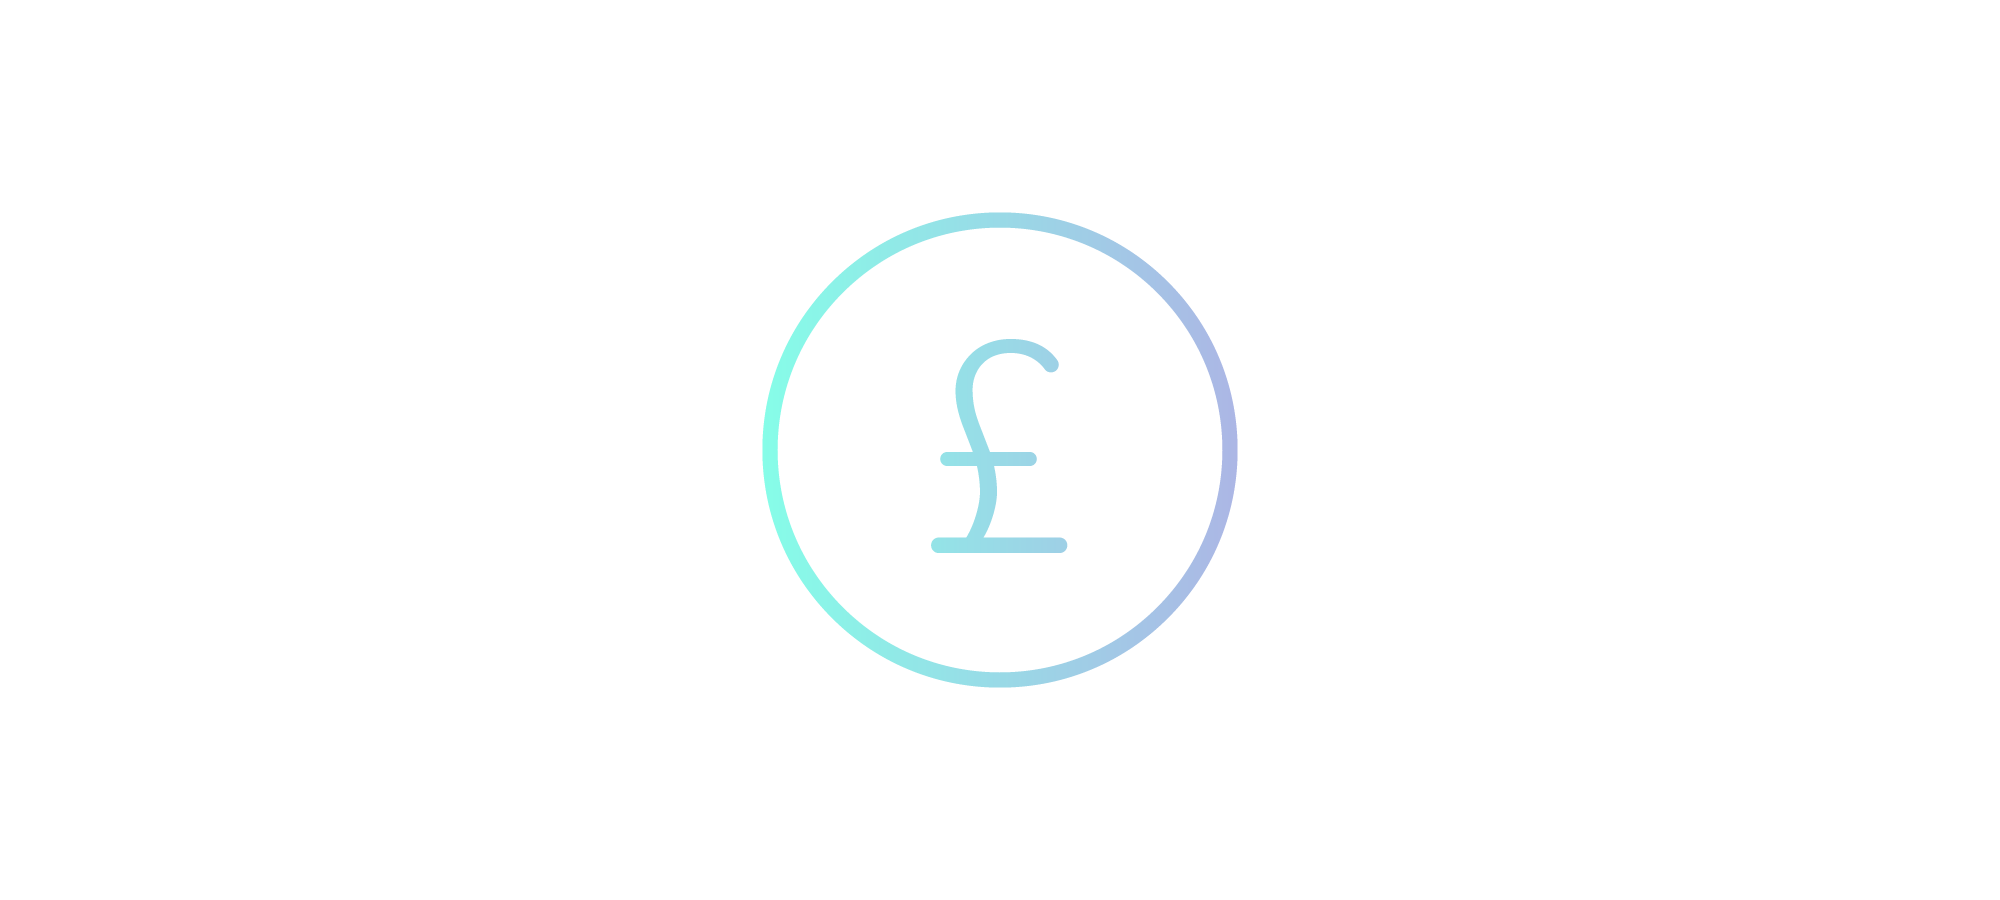 Fast and affordable - We charge a low 0.36% annual account fee and sign up should take less than 5 minutes.